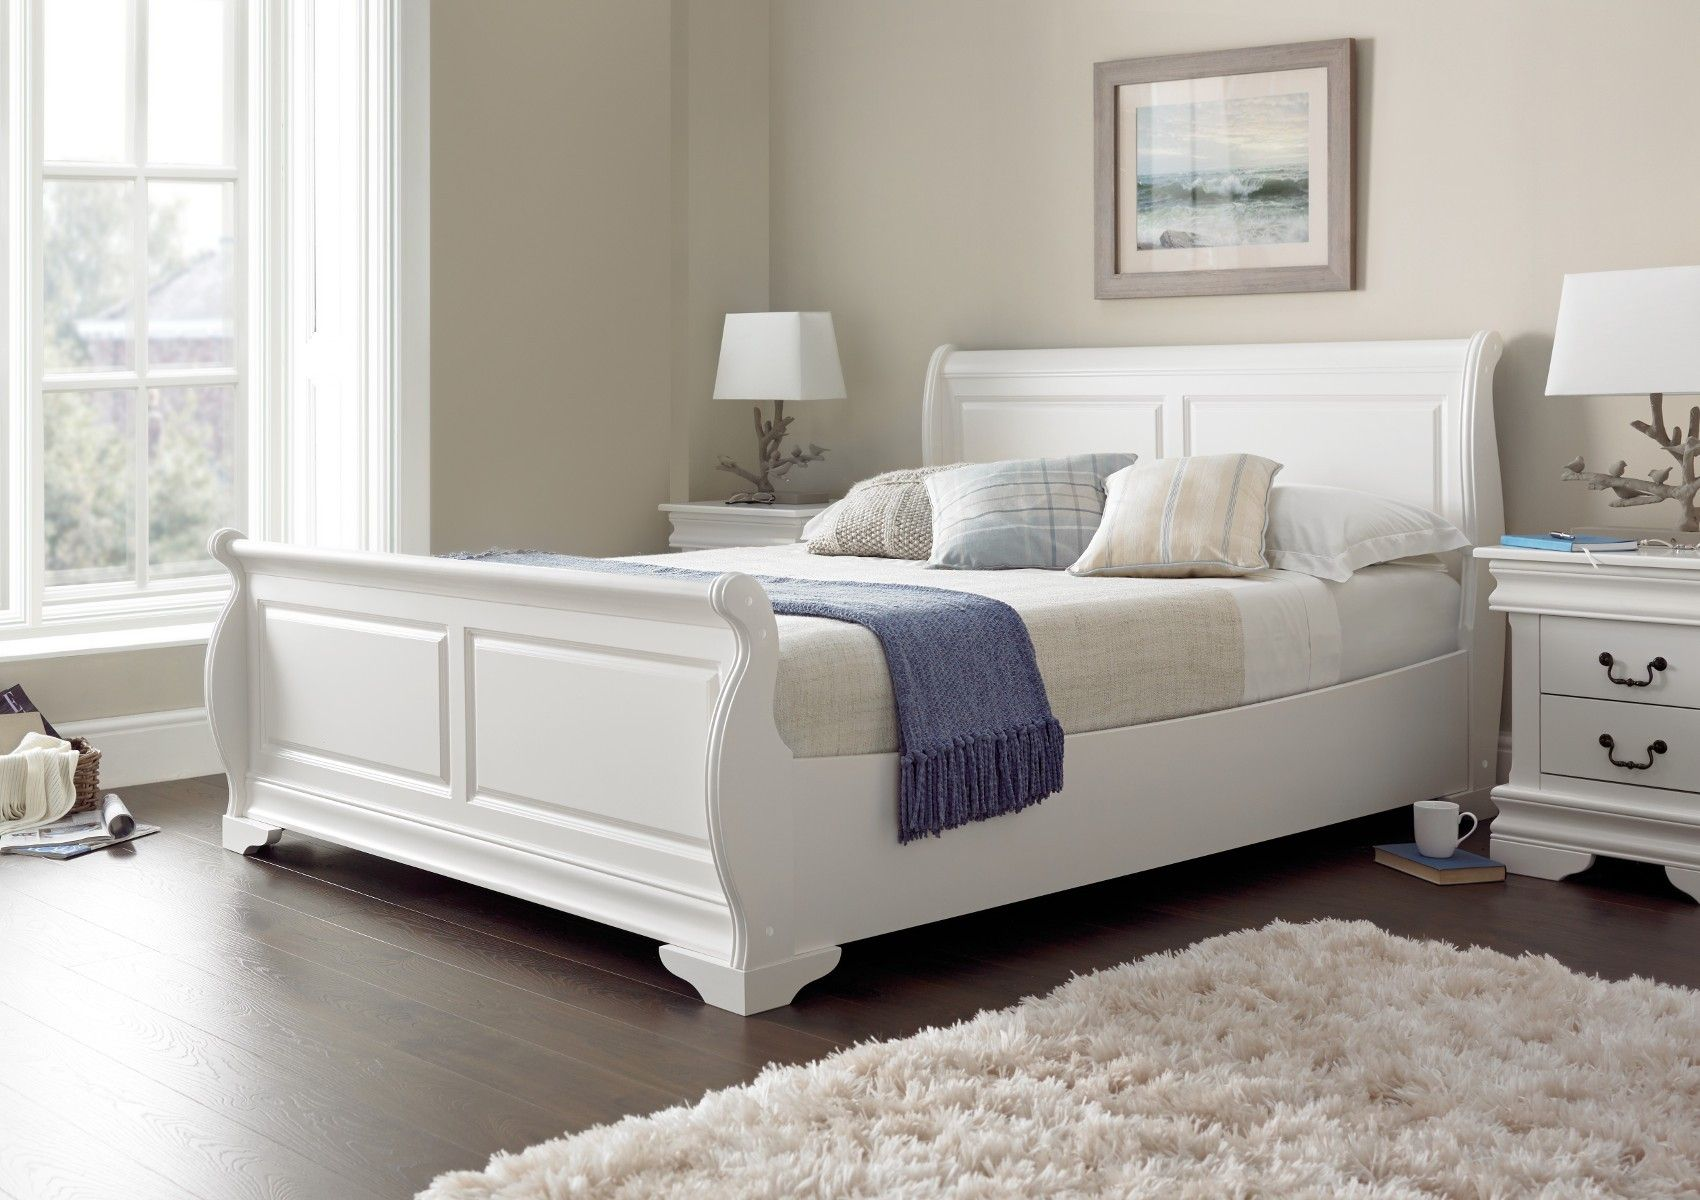 The Louie White Sleigh Bed Is The Perfect Addition To Any Bedroom - Sleigh bed design ideas bedroom